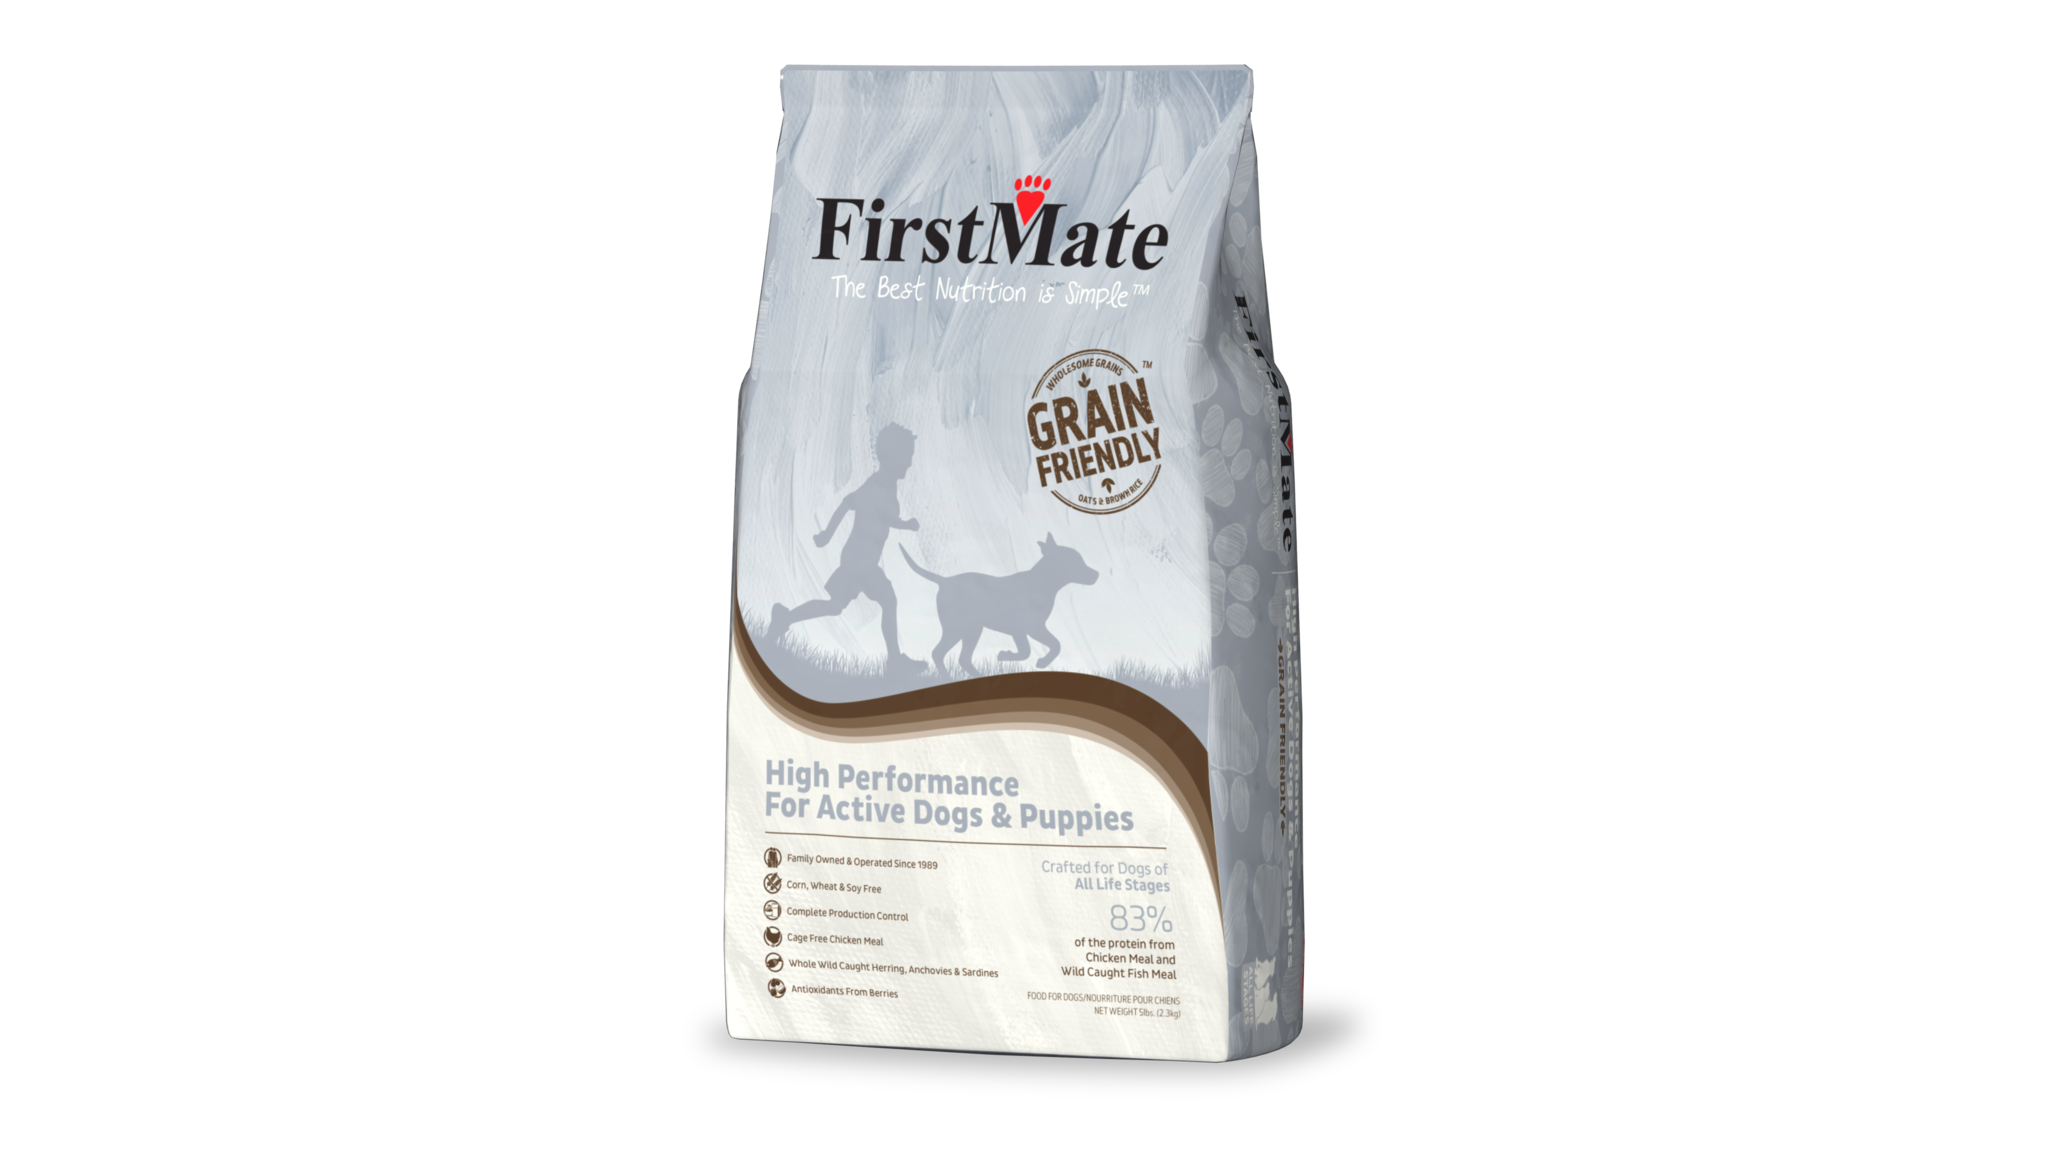 FirstMate FirstMate High Performance Grain Friendly Puppy Dry Dog Food